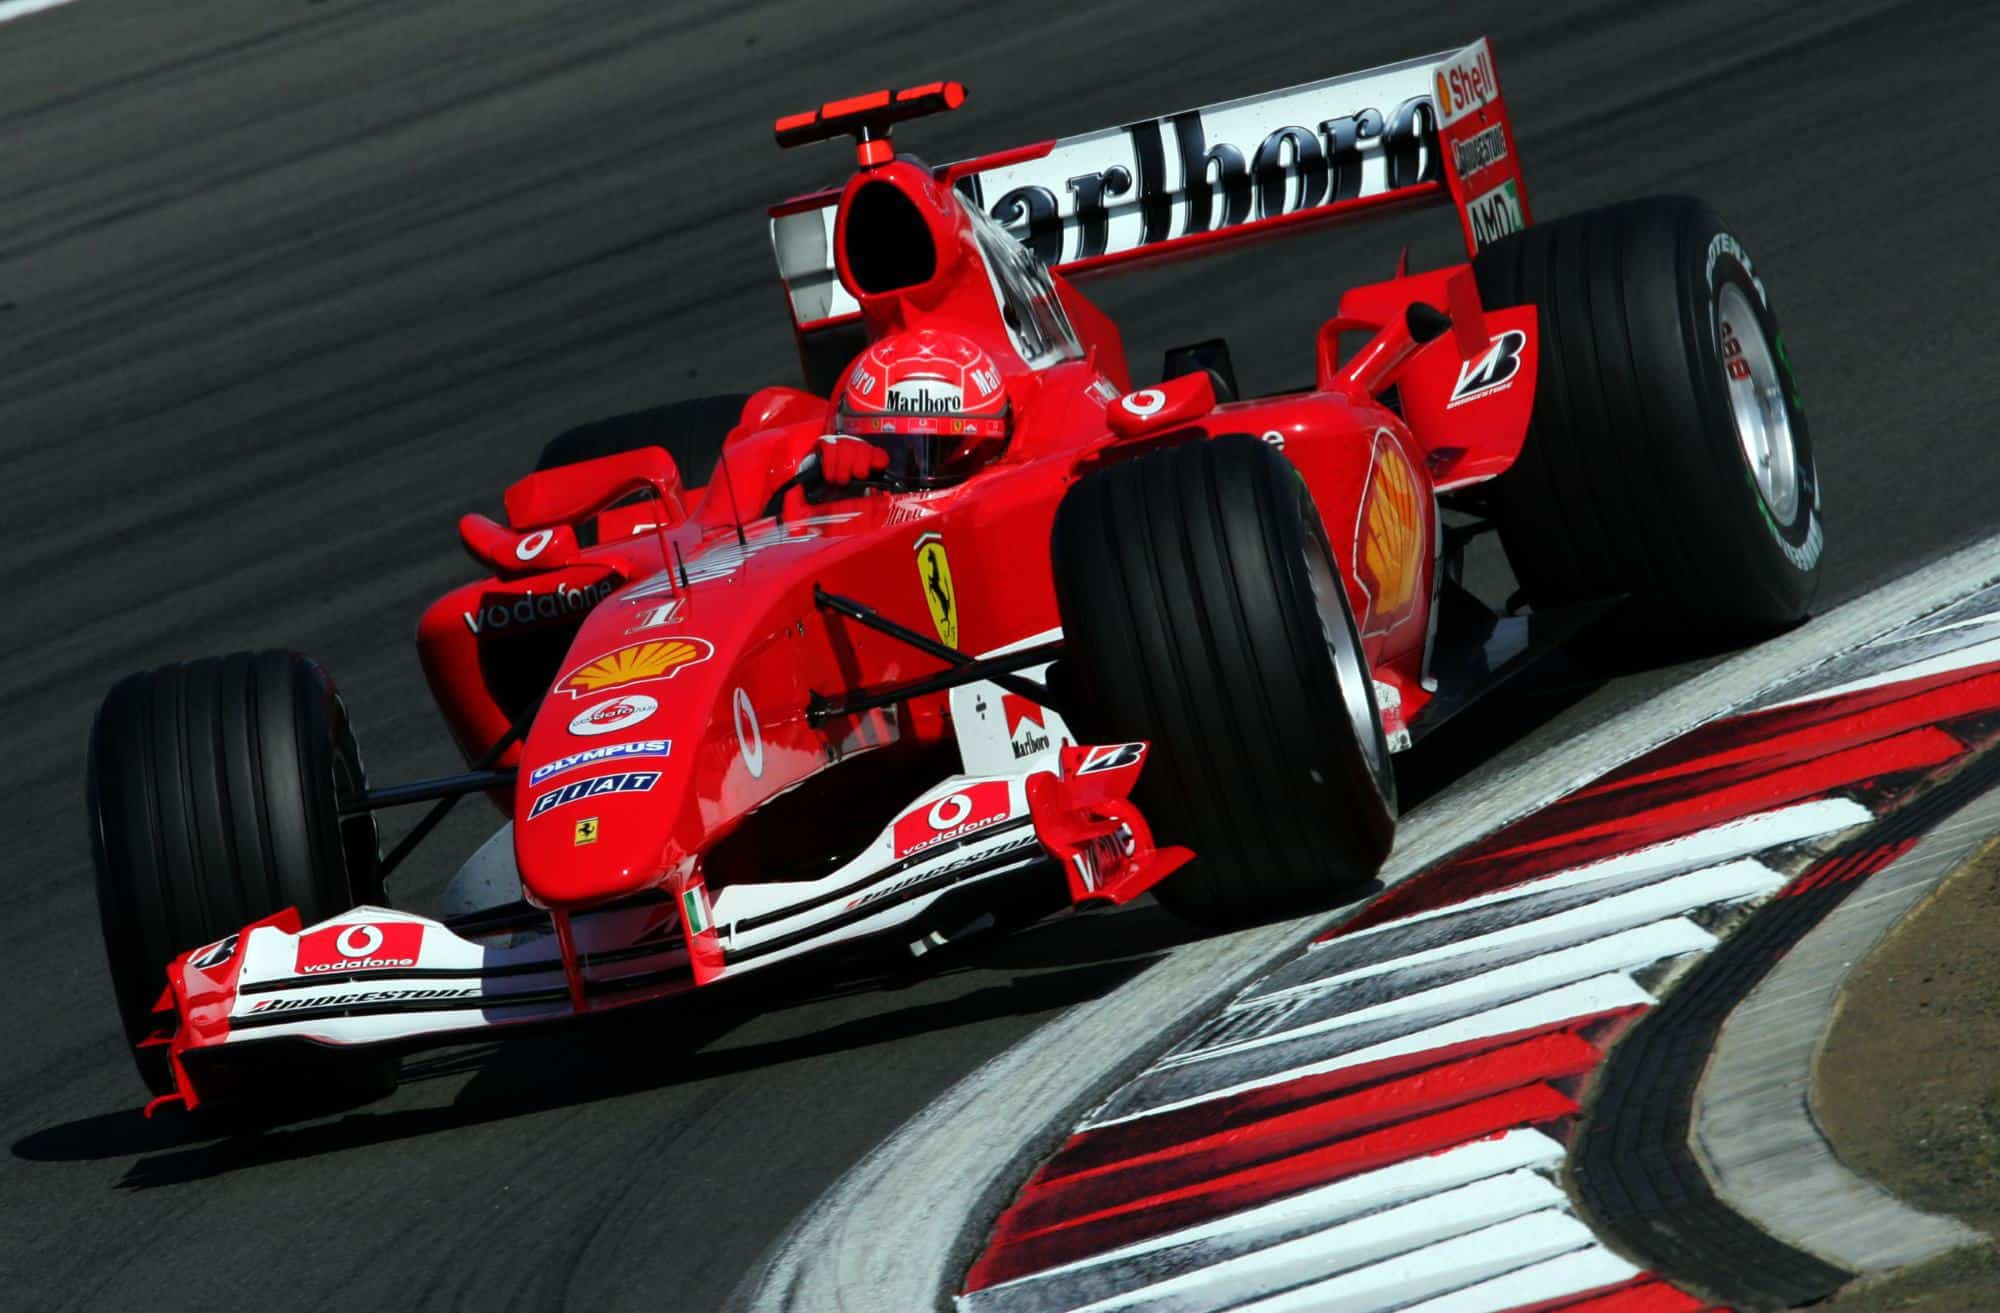 Michael Schumacher Ferrari F2004 European GP Nurburgring Photo Ferrari